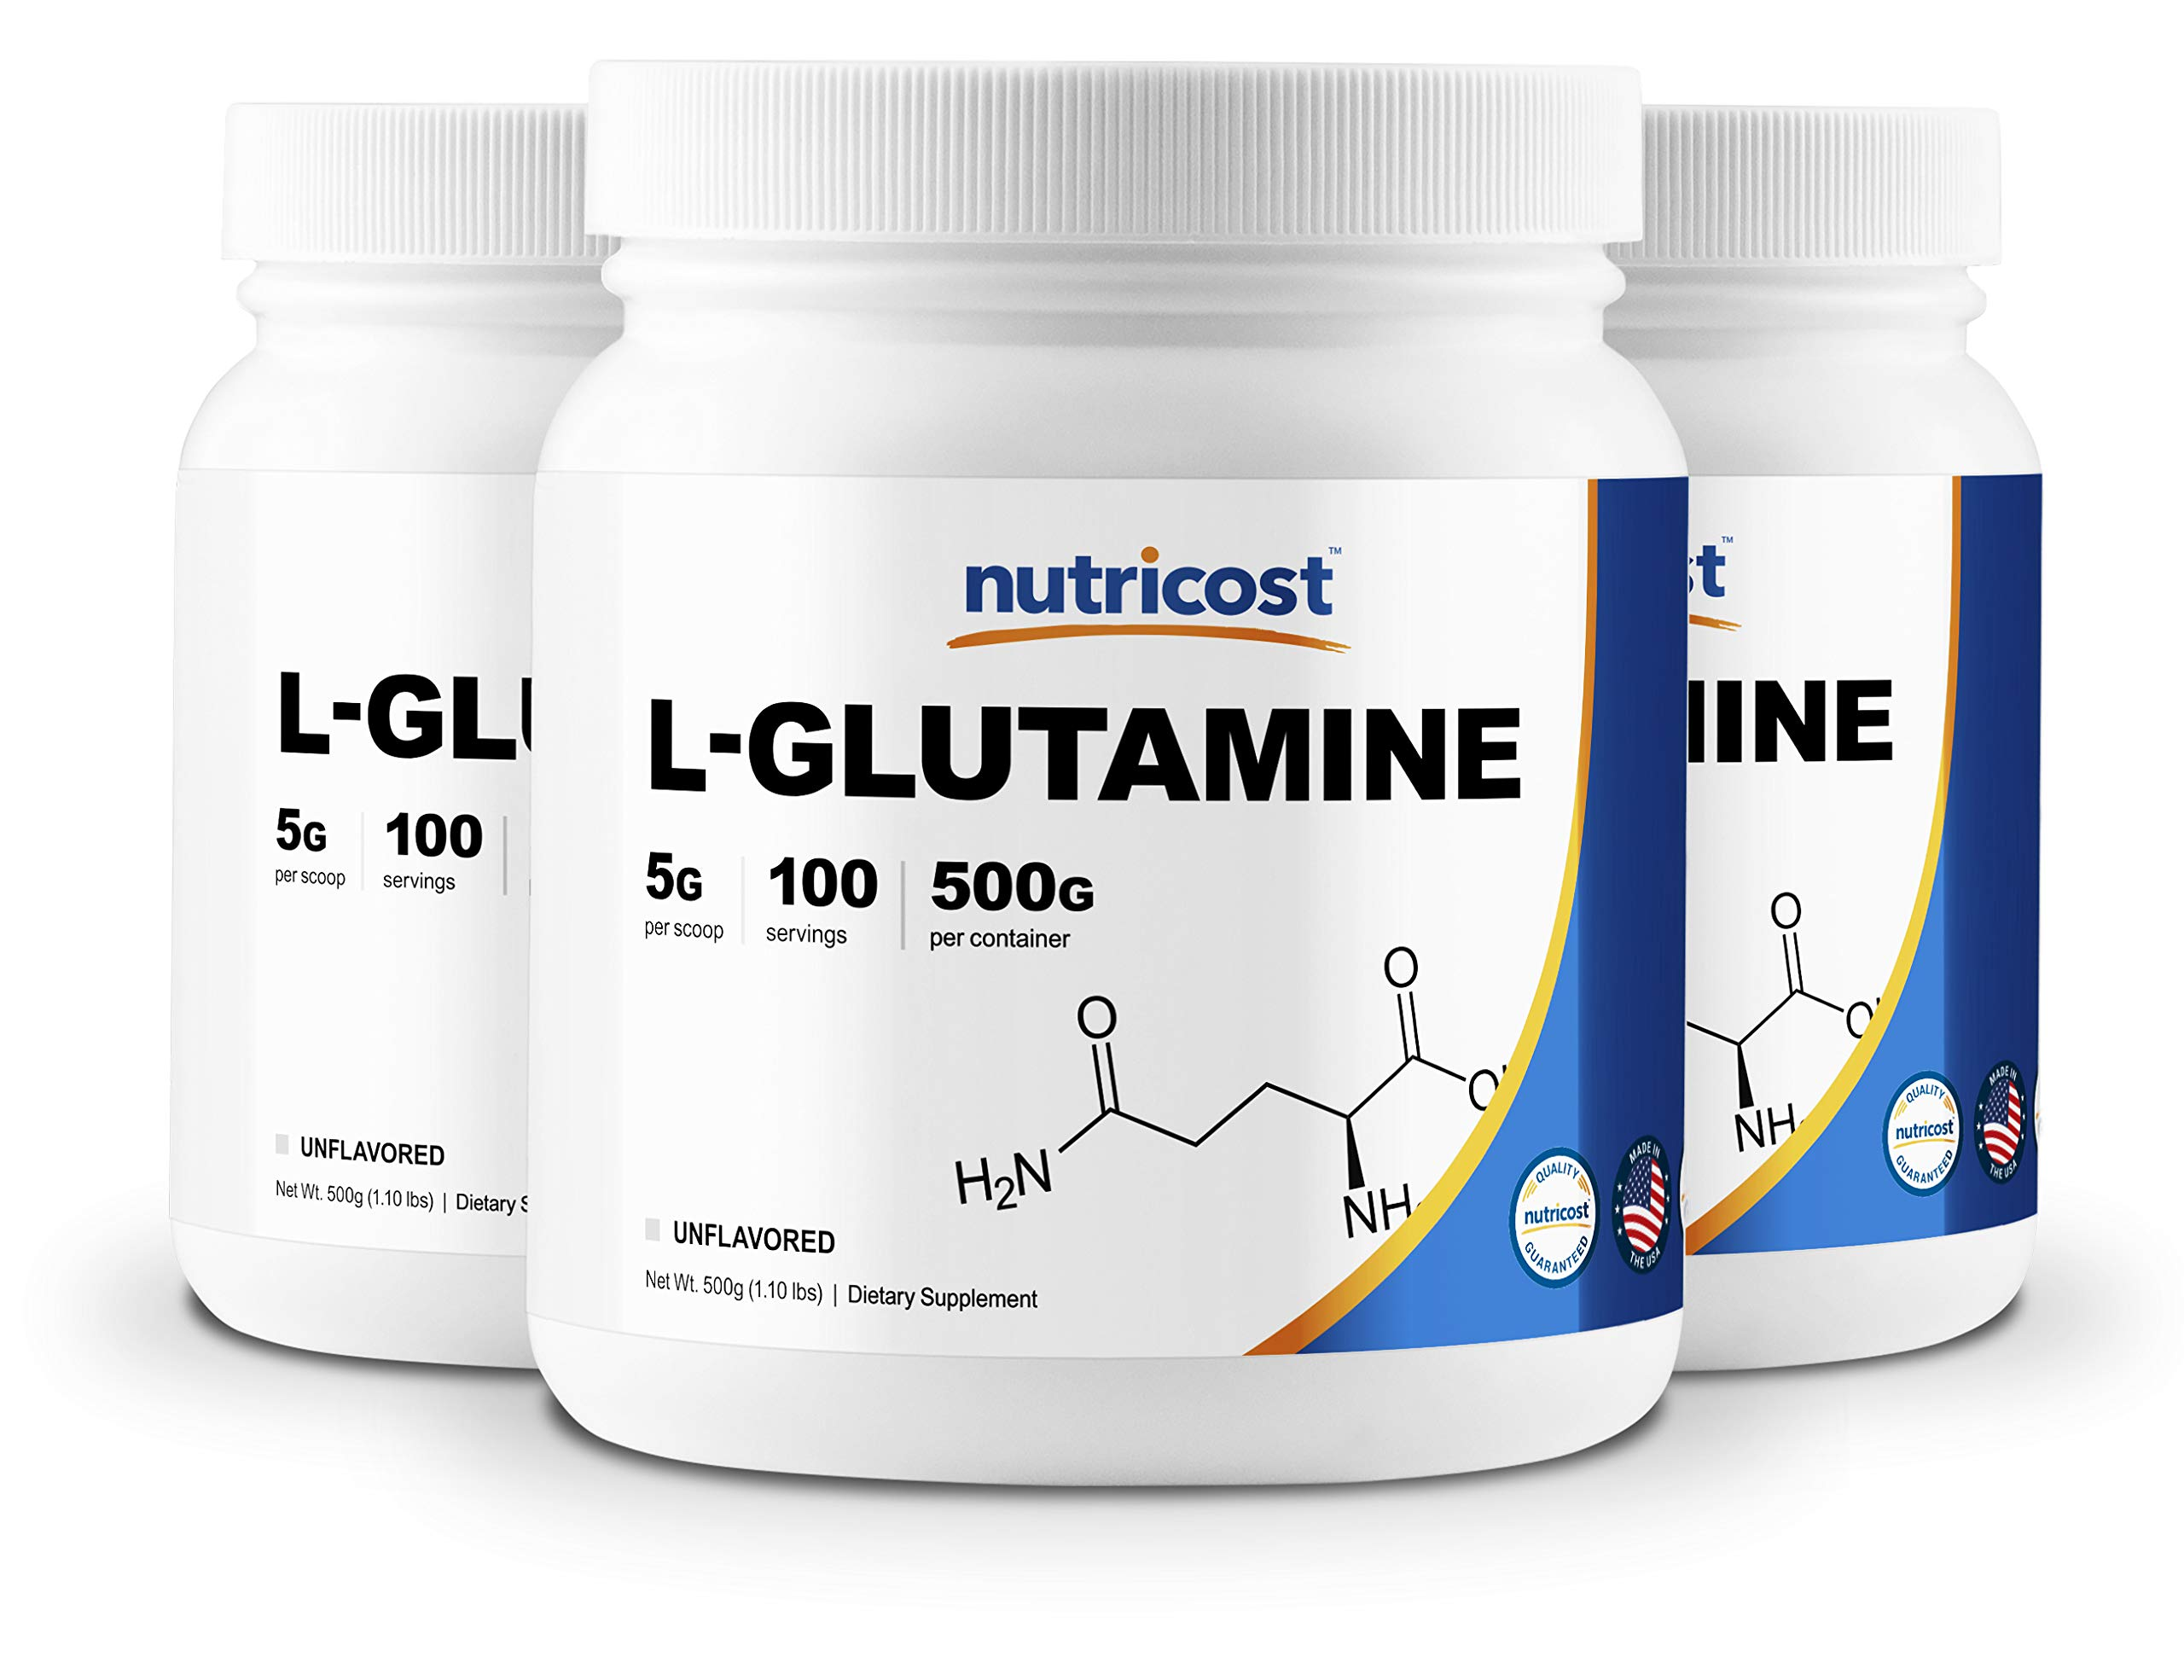 Nutricost L-Glutamine Powder 500G (3 Pack) - Pure L Glutamine - 5000mg Per Serving - 1.1 Pounds & 100 Servings Each - Highest Purity by Nutricost